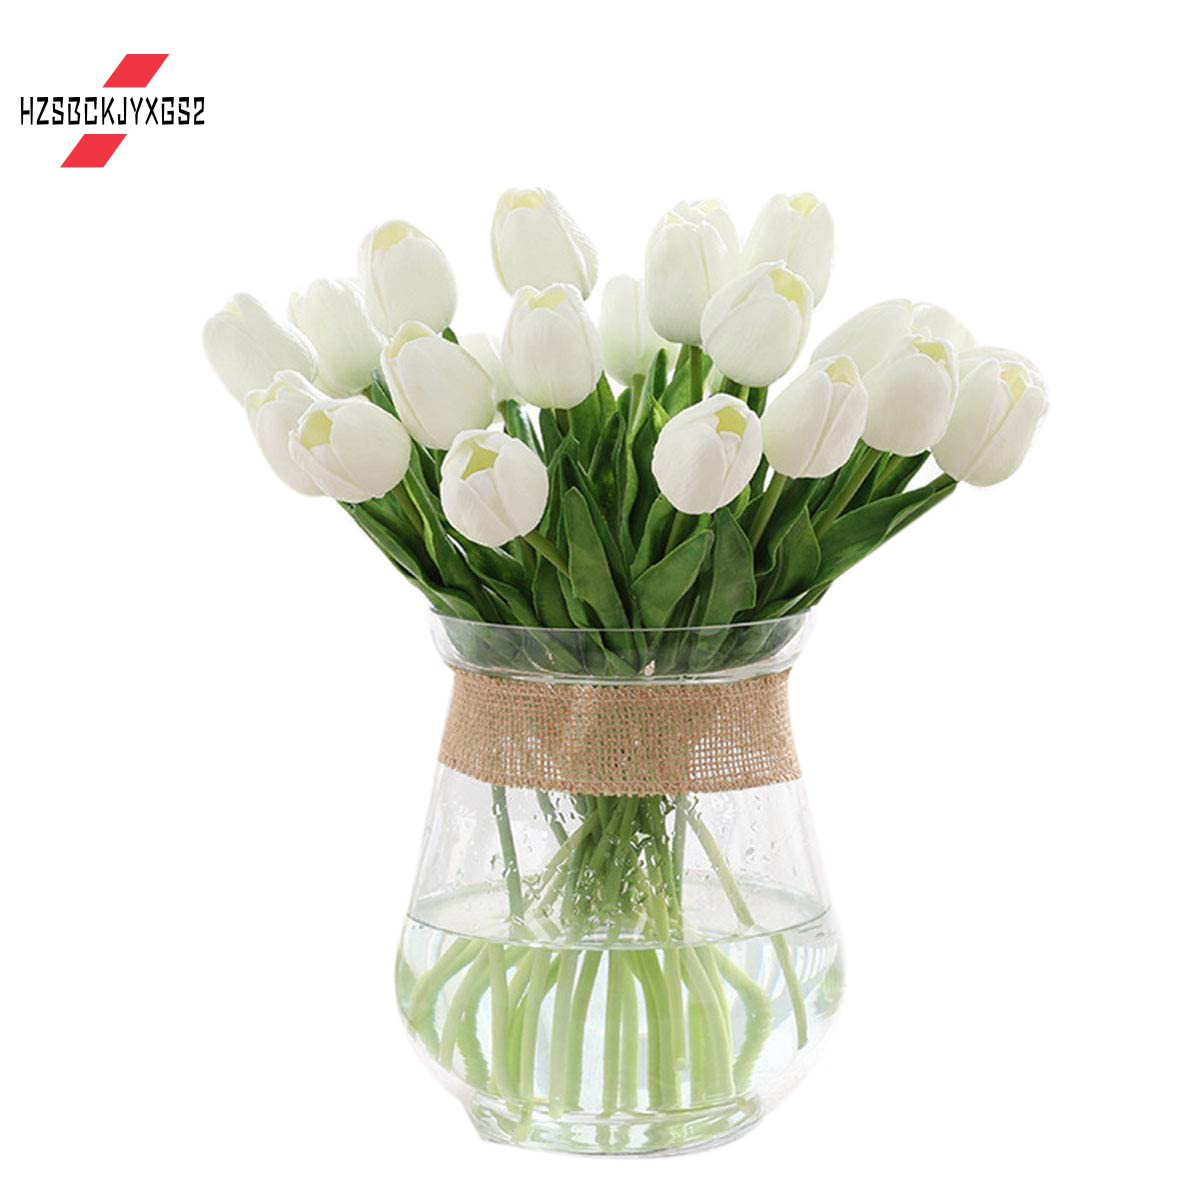 15 Pcs Artificial Flowers Tulips Real Touch Fake Flowers Arrangement Bouquet For Home Office Wedding Party Decoration Shopee Singapore